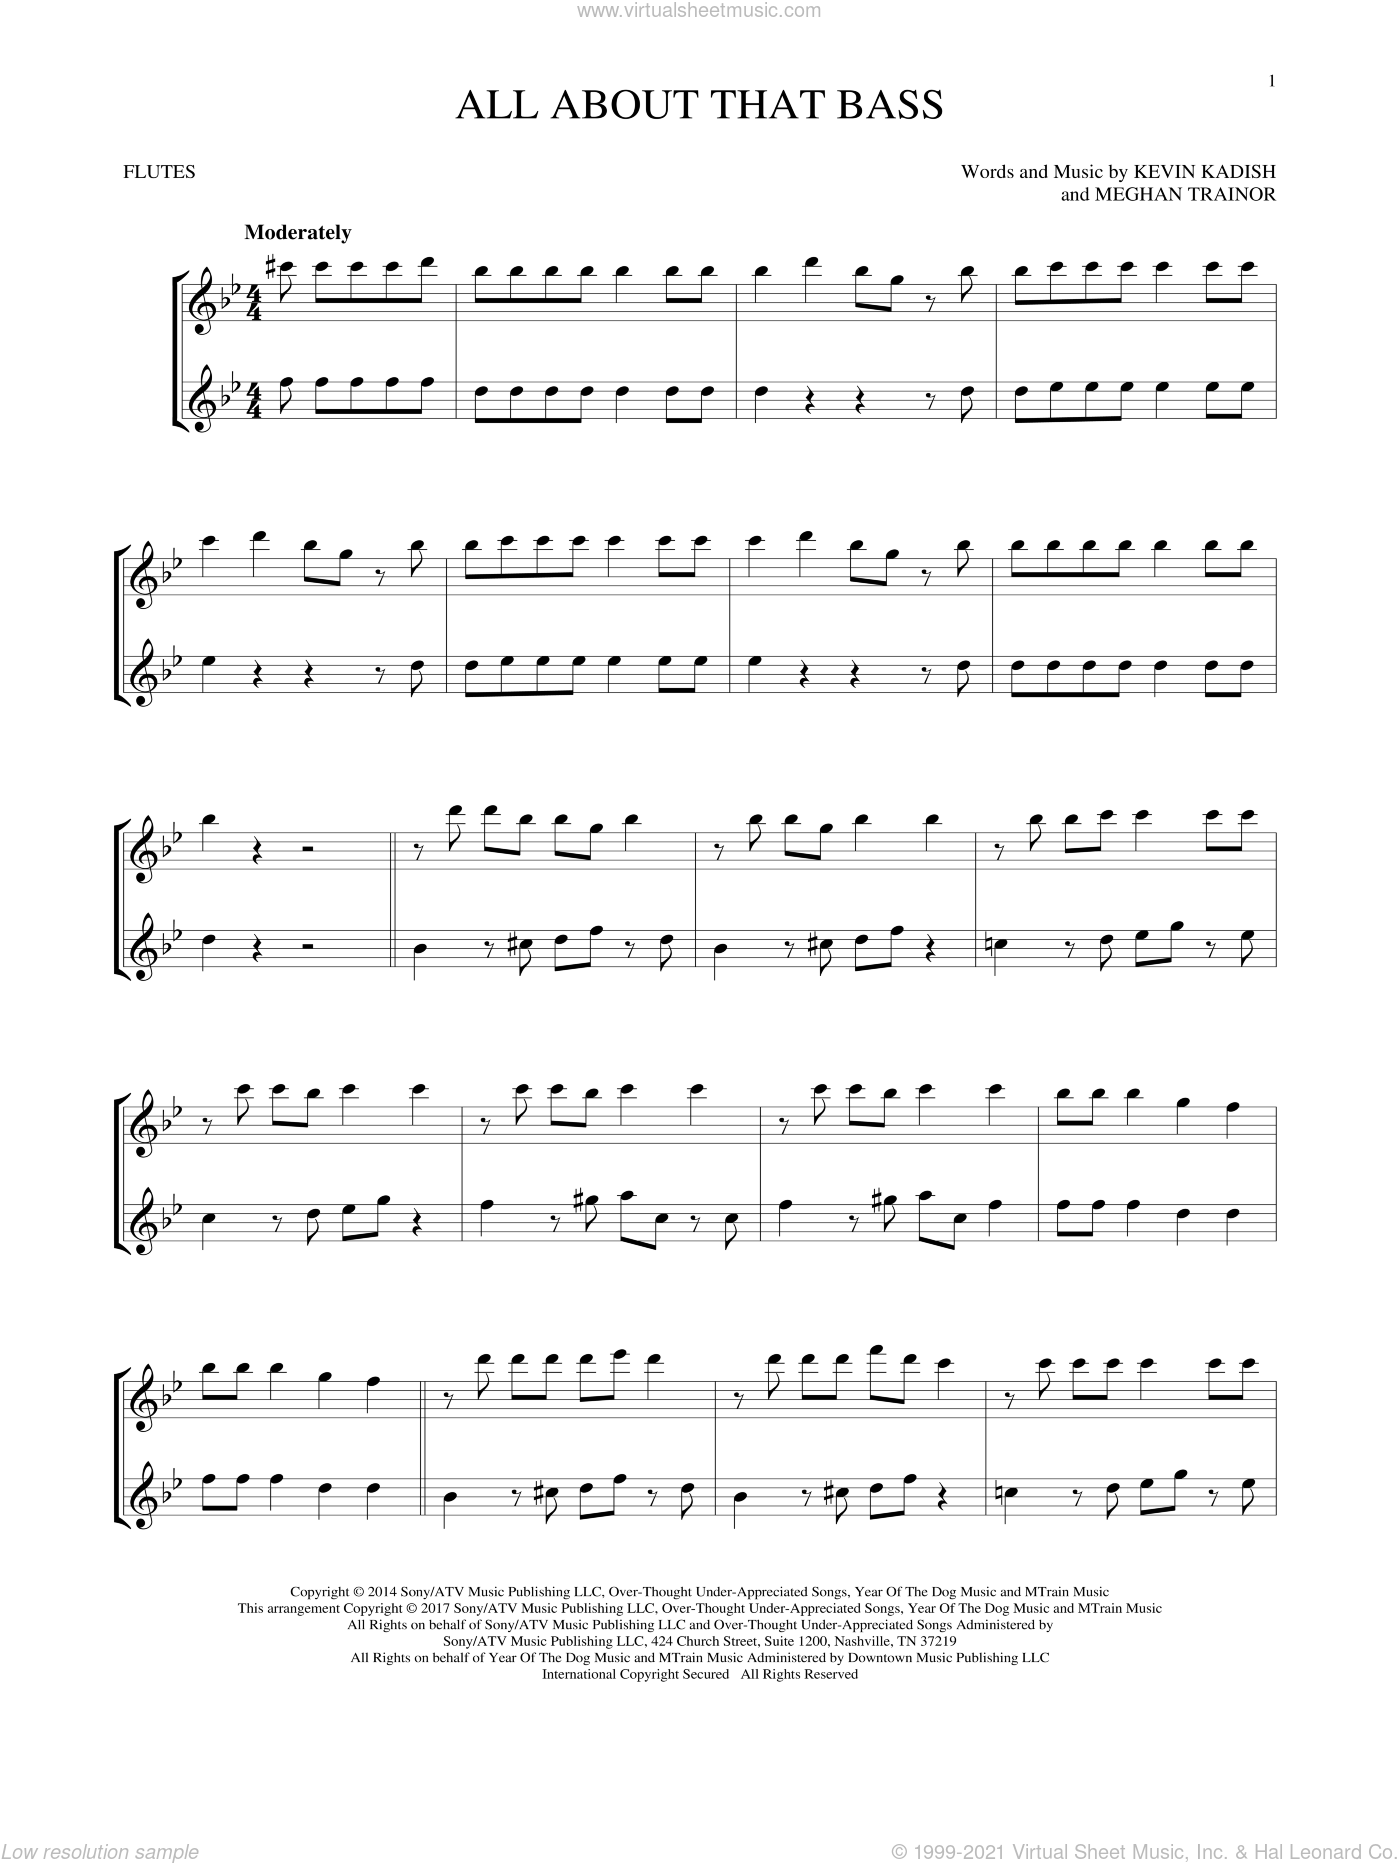 All About That Bass sheet music for two flutes (duets) by Meghan Trainor and Kevin Kadish, intermediate skill level